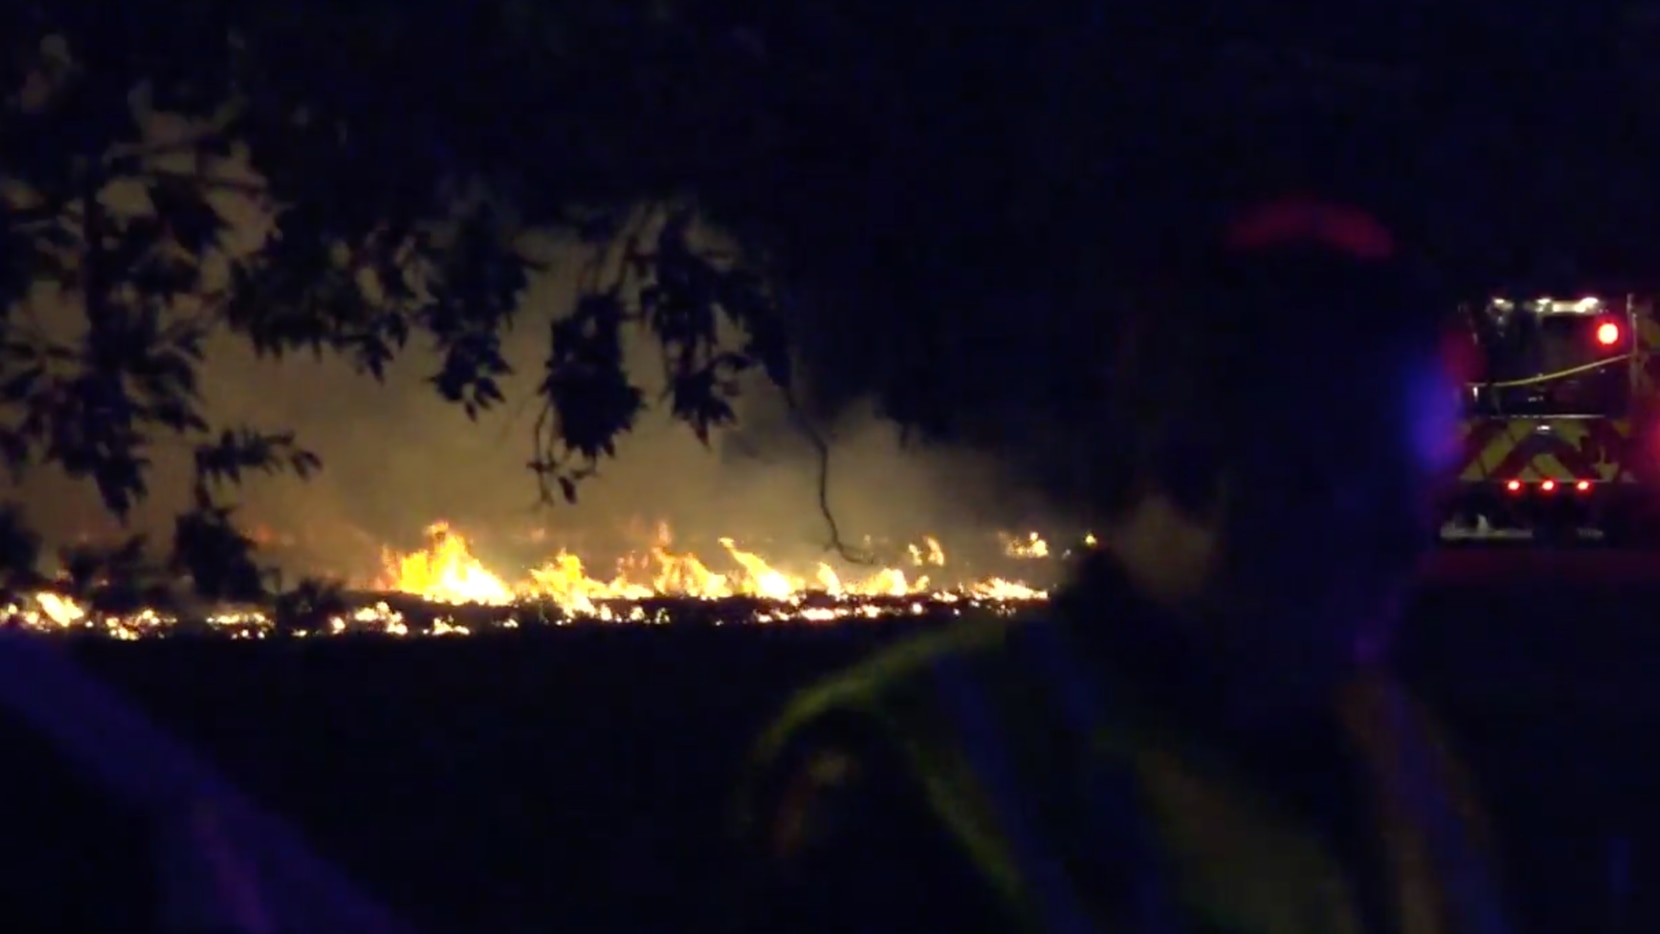 Fire crews in Plano work to put out a grass fire sparked during the city's fireworks display for the Fourth of July 2020.